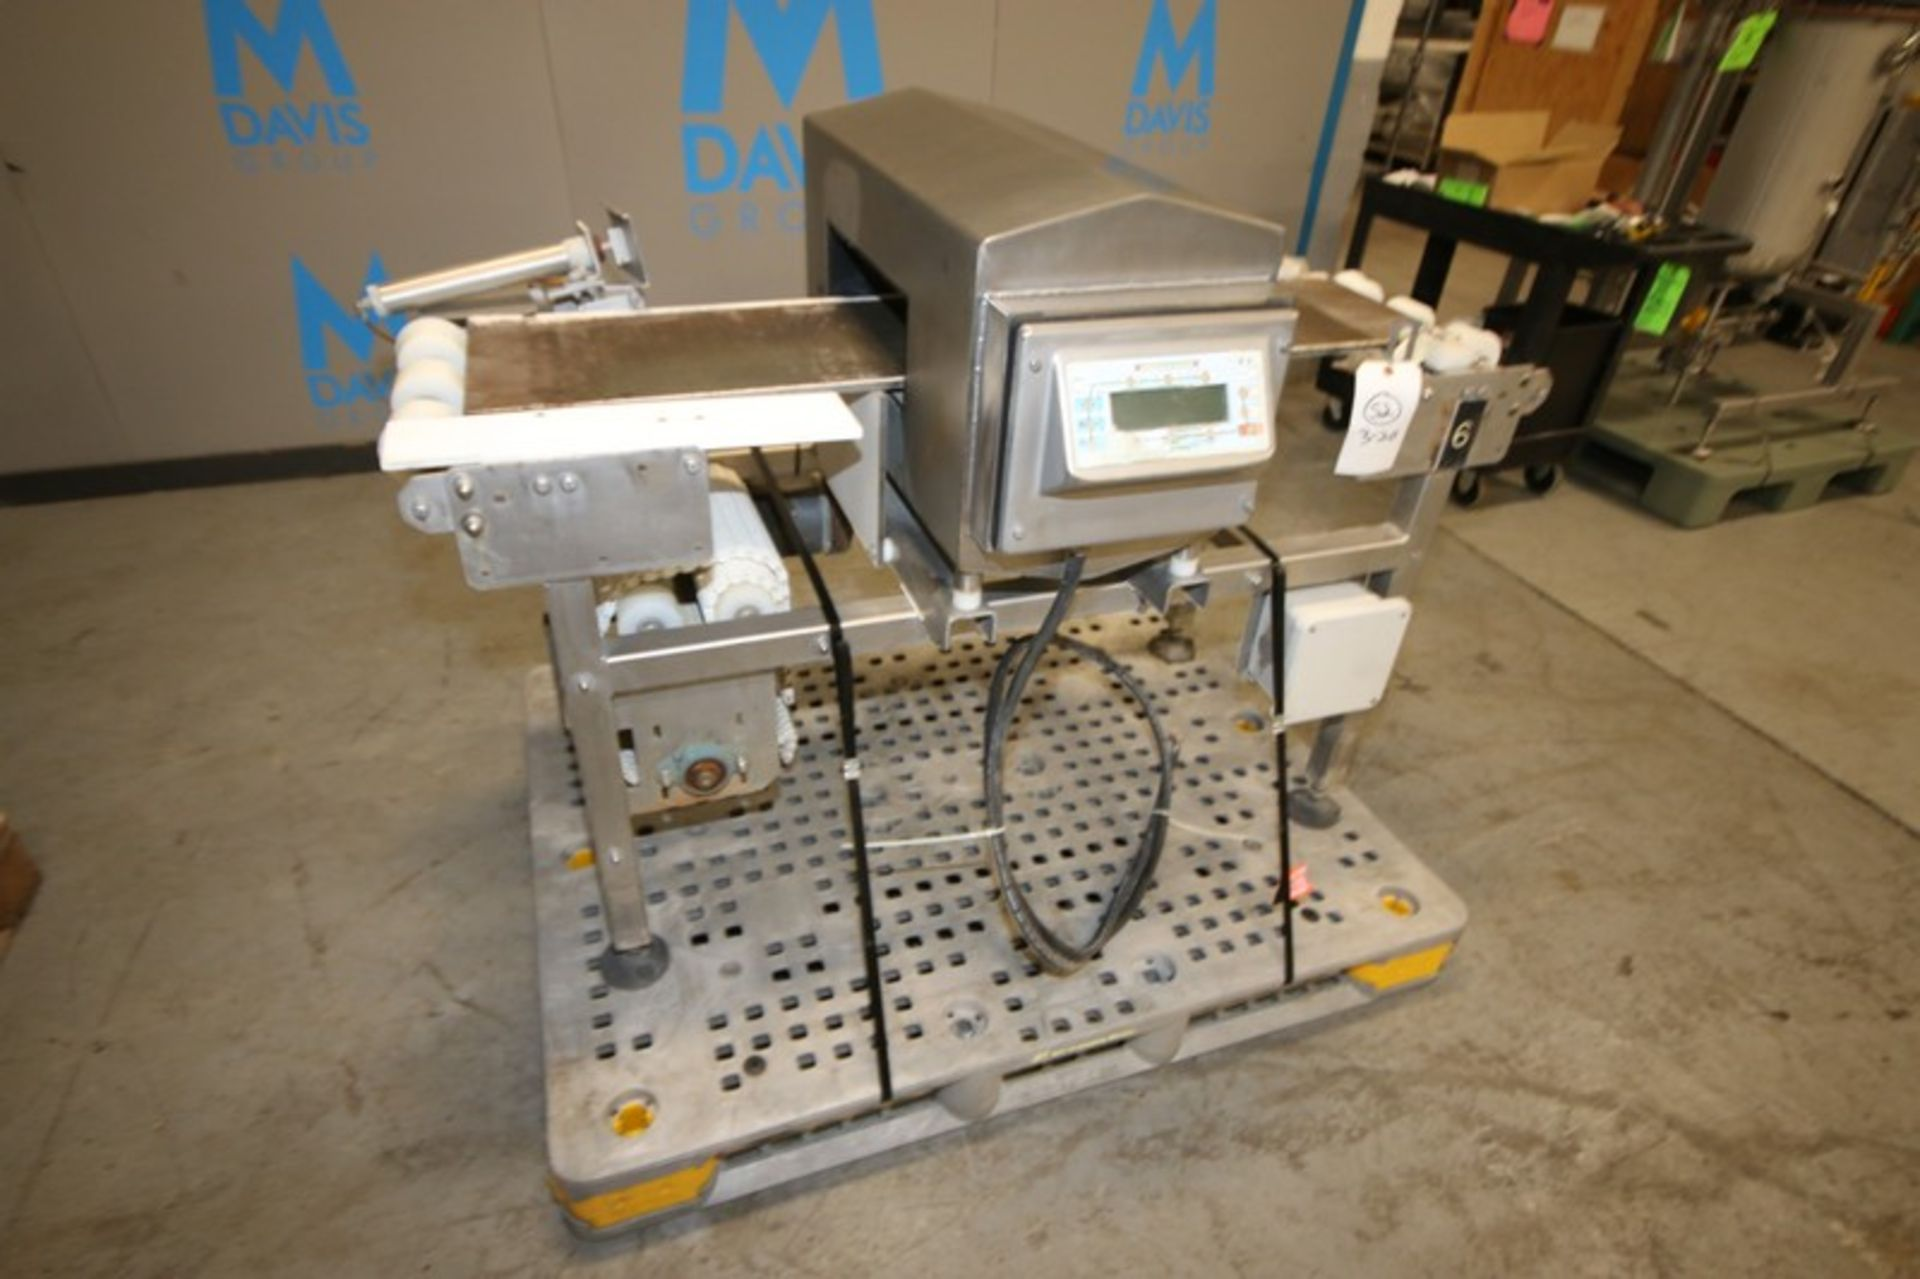 """Lot 15 - S/S Metal Detector, with Aprox. 13-1/2"""" W x 5"""" H x 13"""" Deep Product Opening, with Aprox. 12-1/2"""" W"""